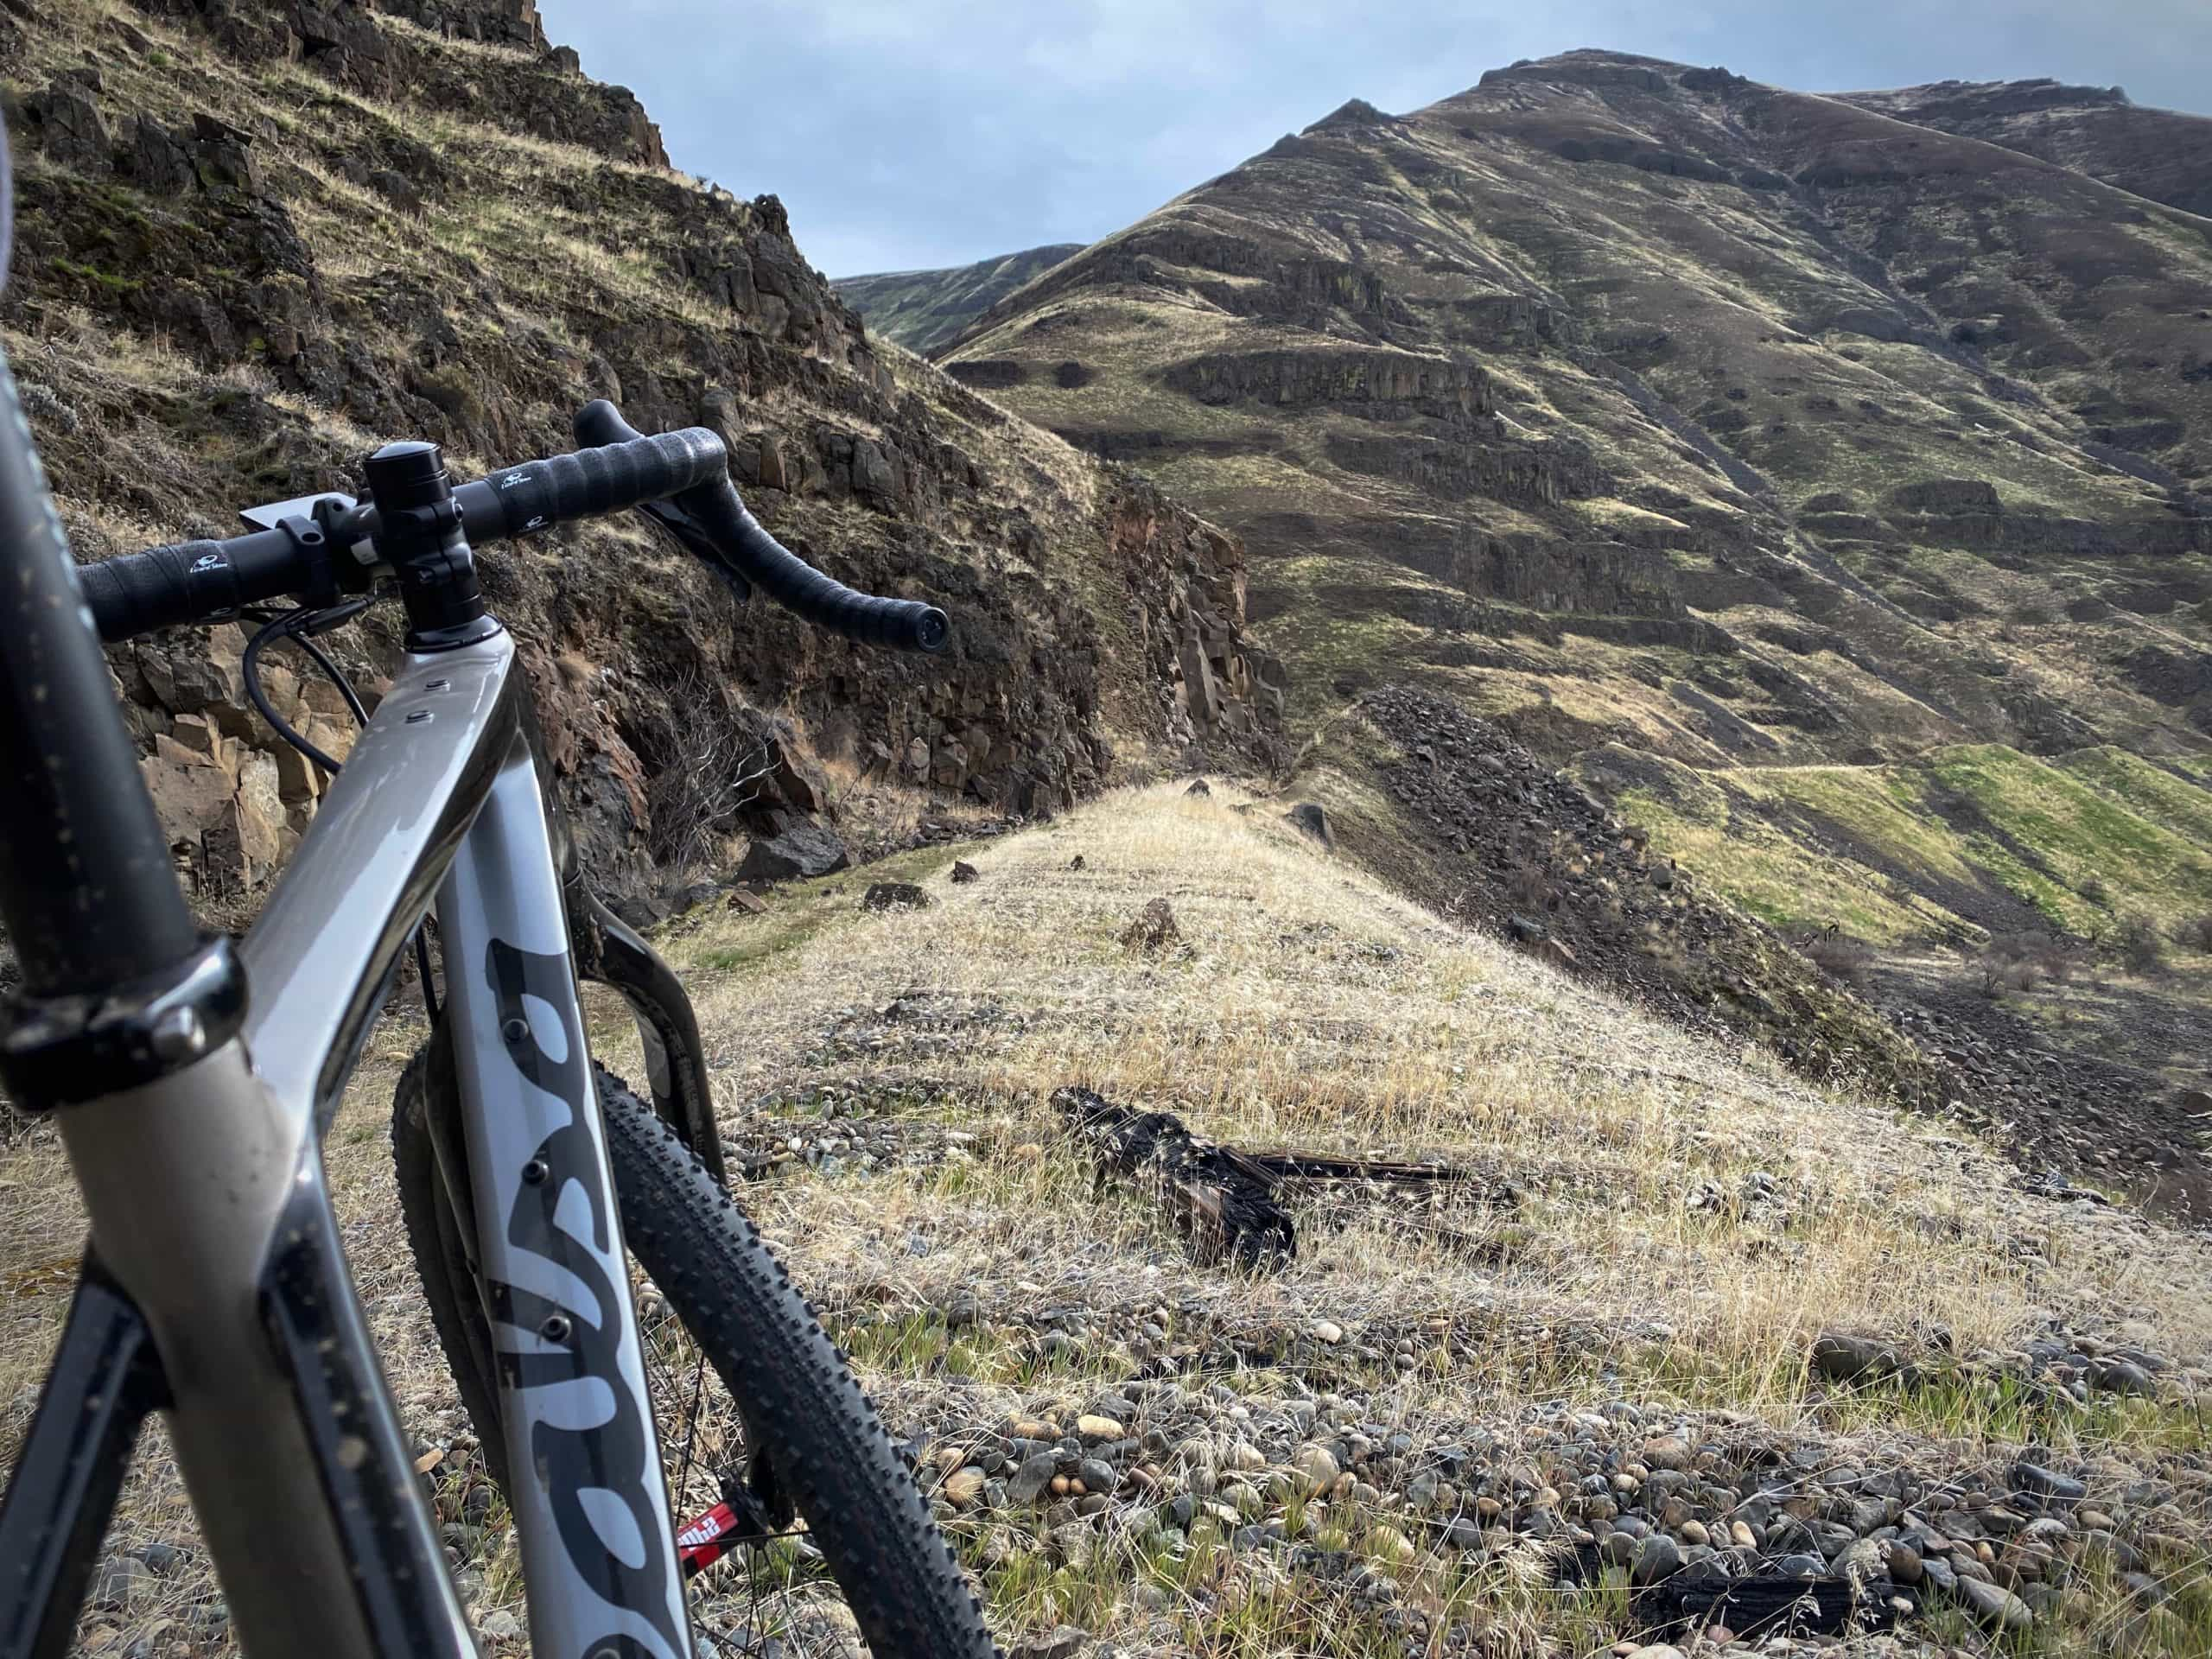 The rough single track trail with railway ties still in place along the Deschutes River just north of Macks Canyon.